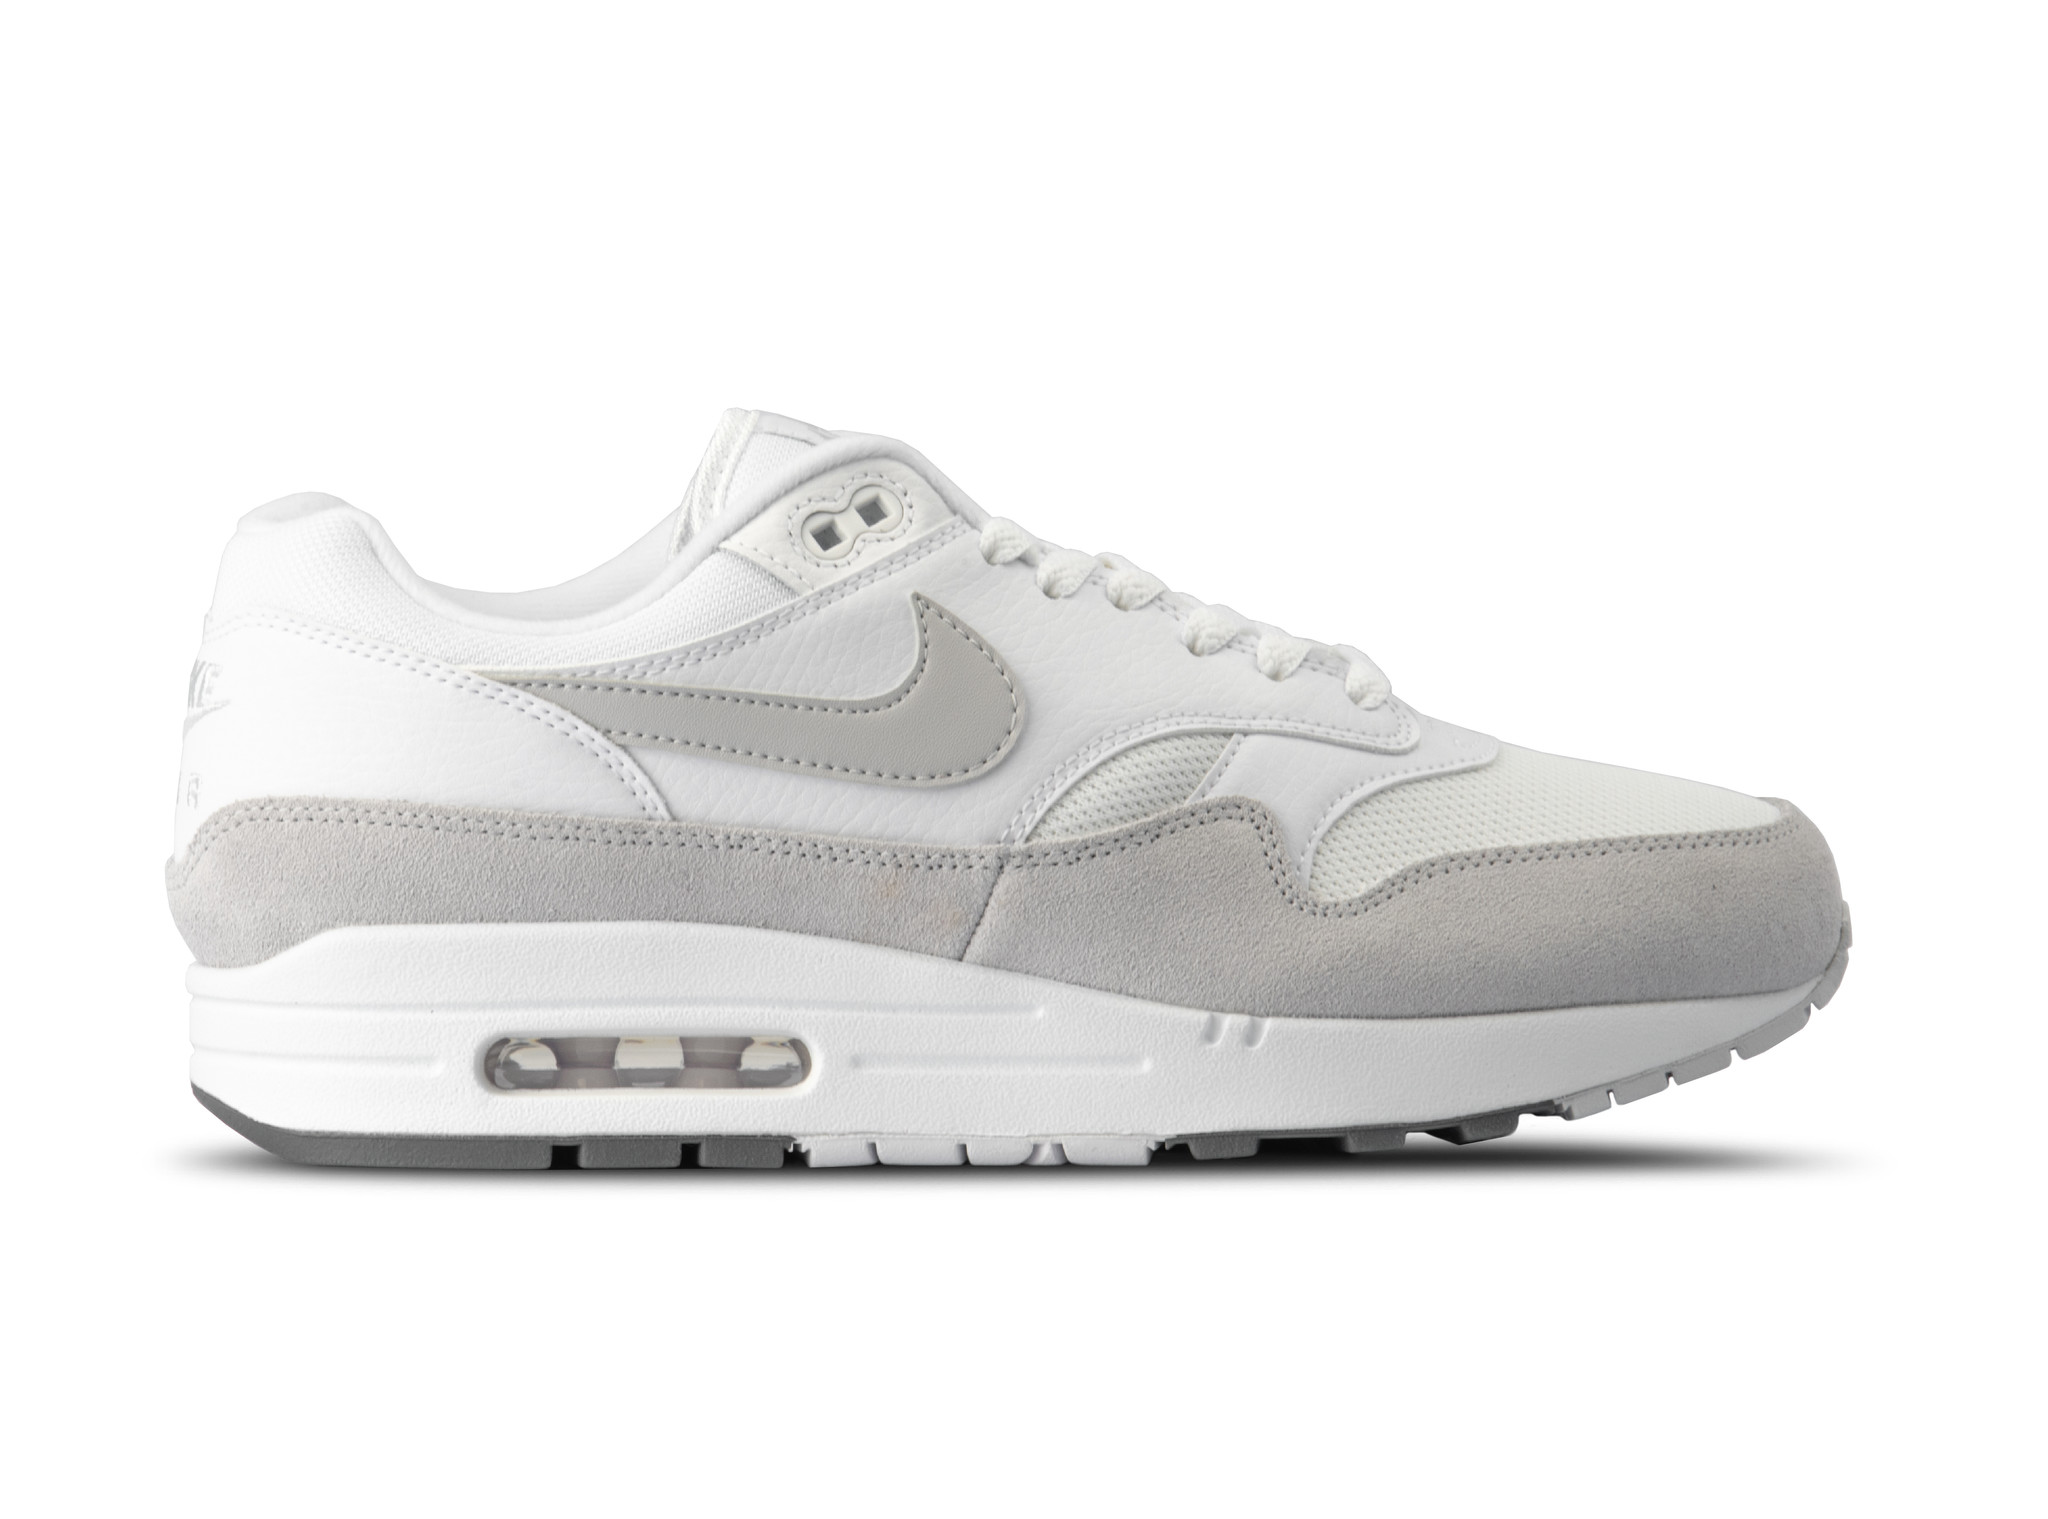 sports shoes 70604 ee081 Air Max 1 White Pure Platinum Cool Grey AH8145 110 will be added to your  shopping card